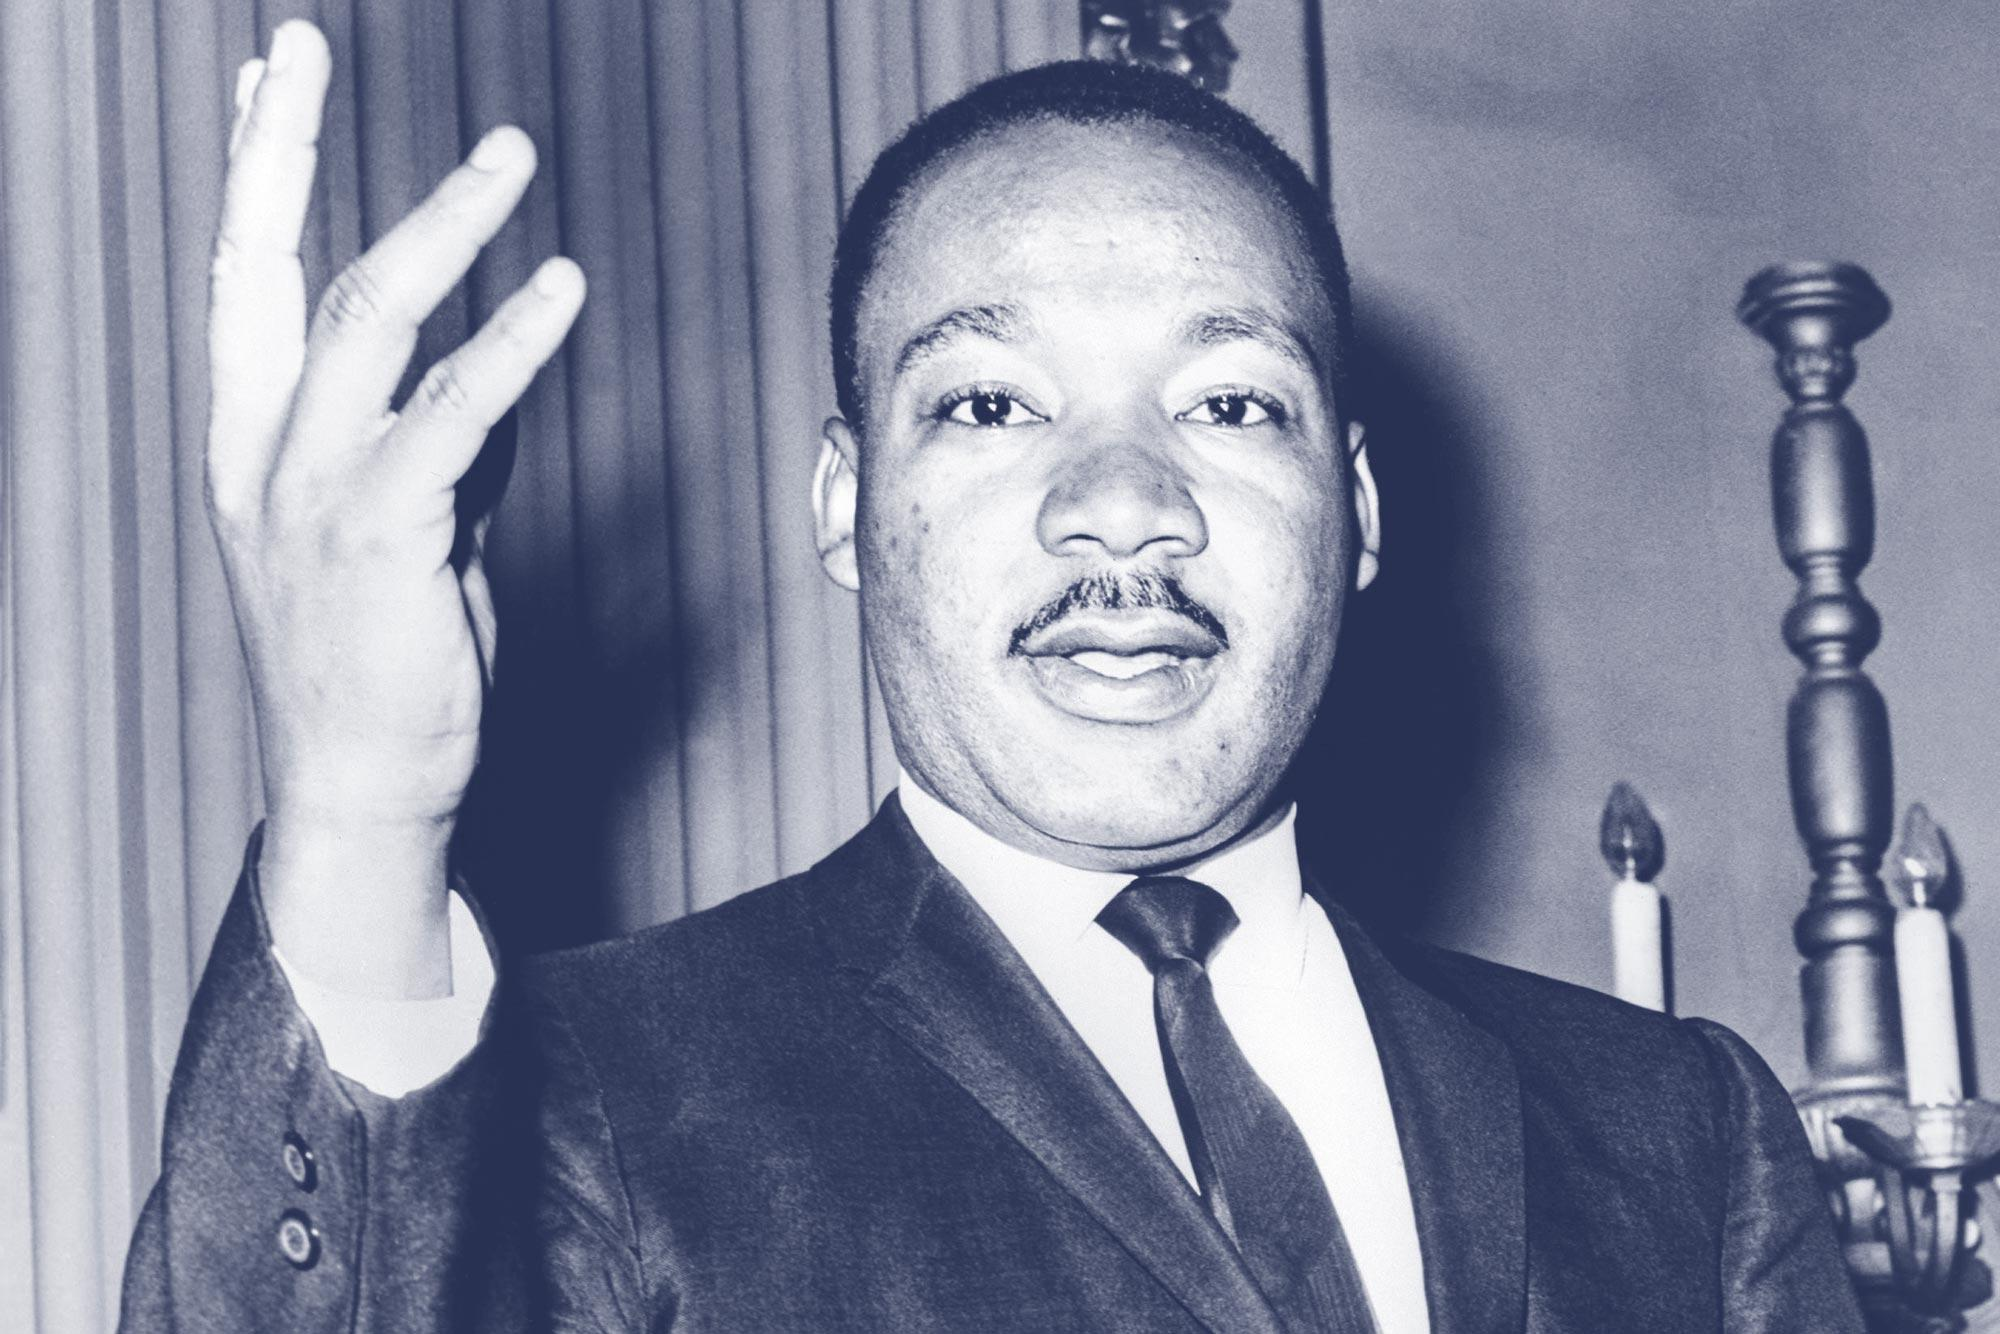 Events honoring the legacy of Martin Luther King Jr. will be held from Jan. 15 through Jan. 29.